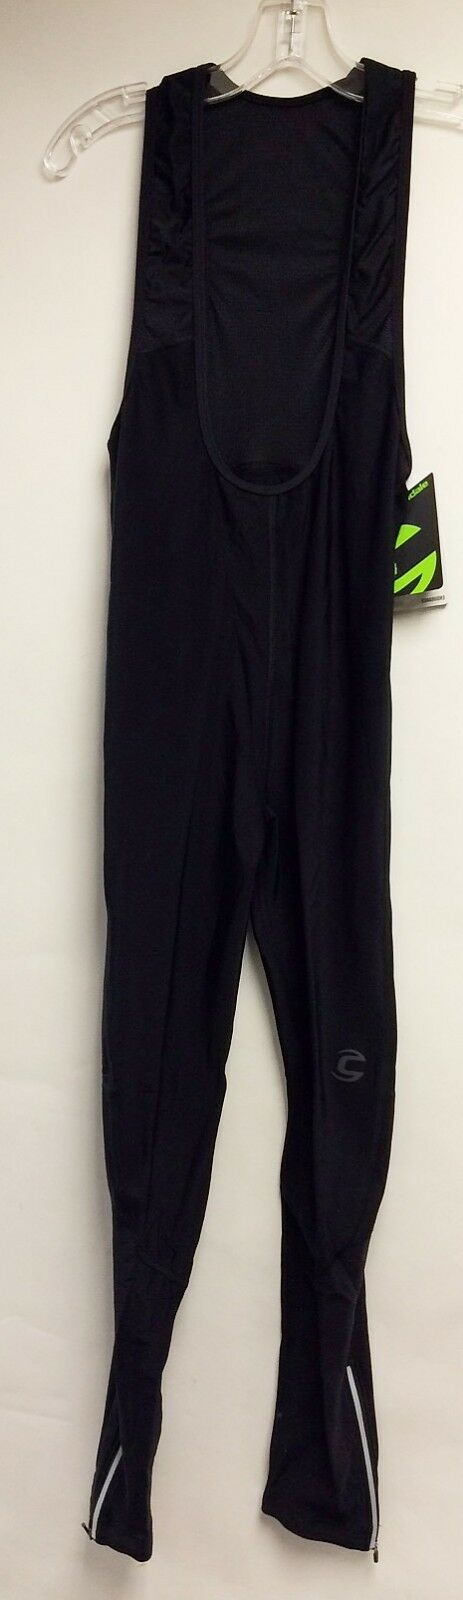 Cannondale Midweight Winter Bib Tights, Cycling, Road, no pad, no chamois